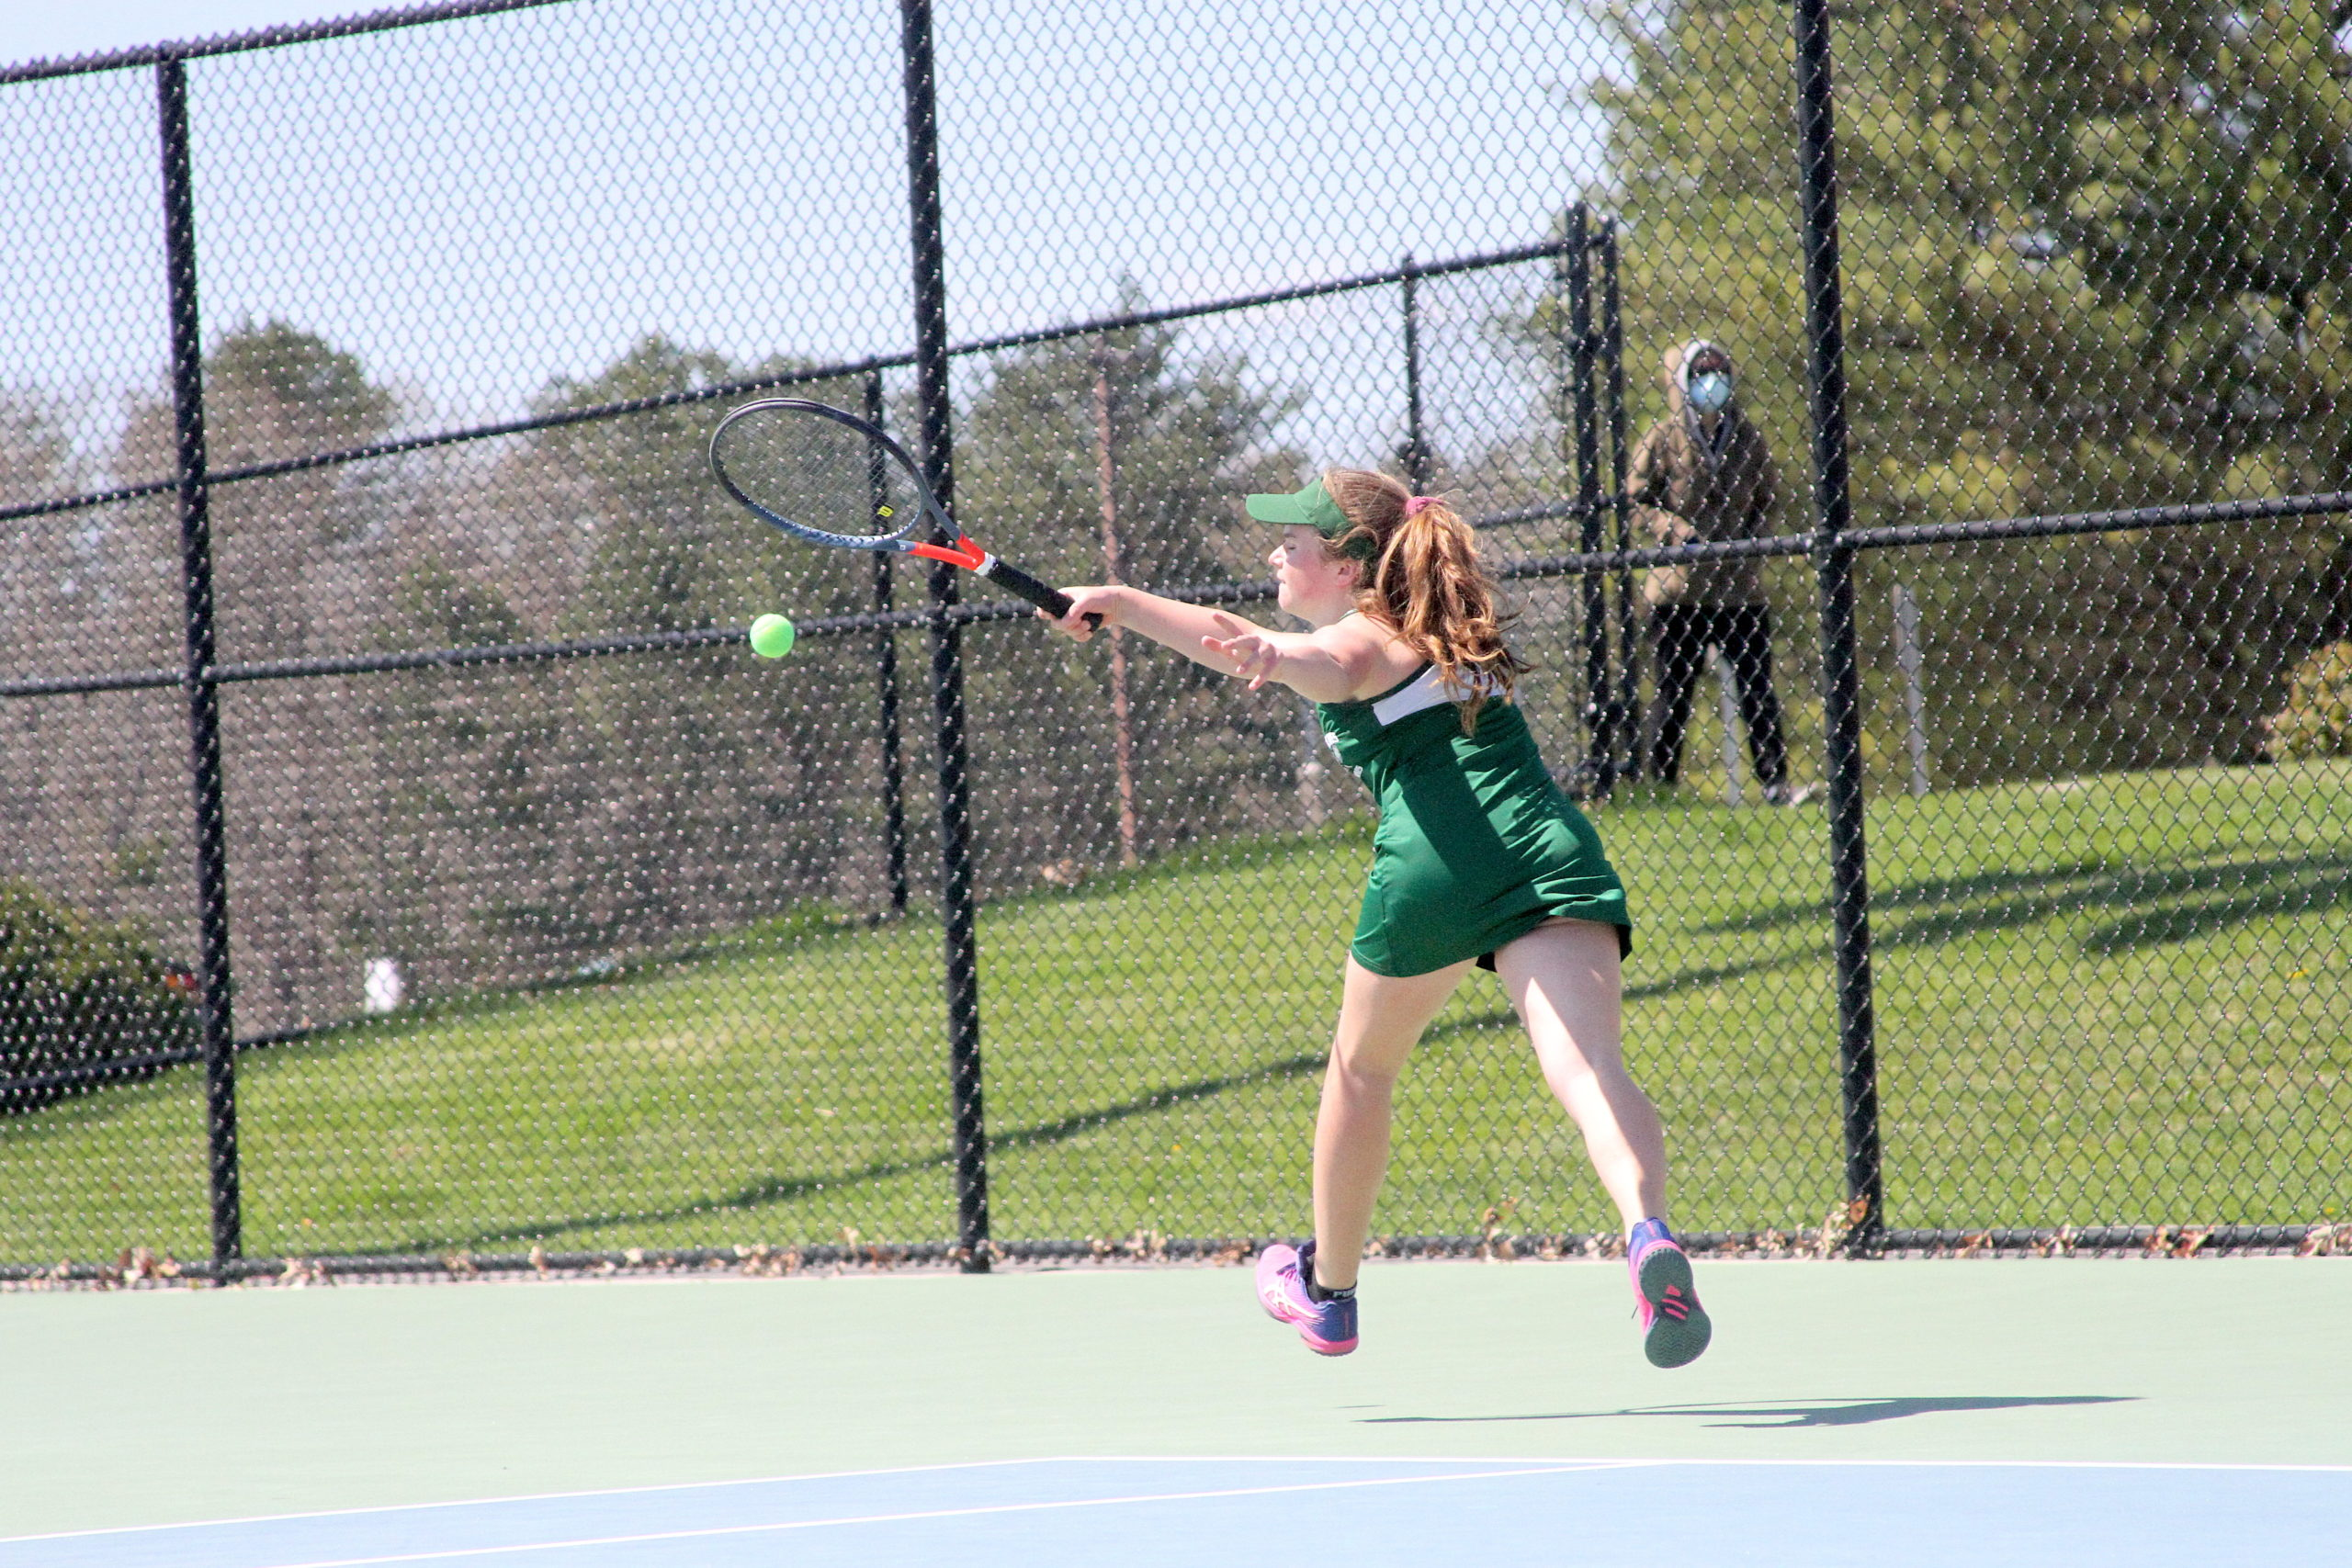 Westhampton Beach freshman Julia Stabile reaches for the ball in her doubles team's quarterfinal matchup.